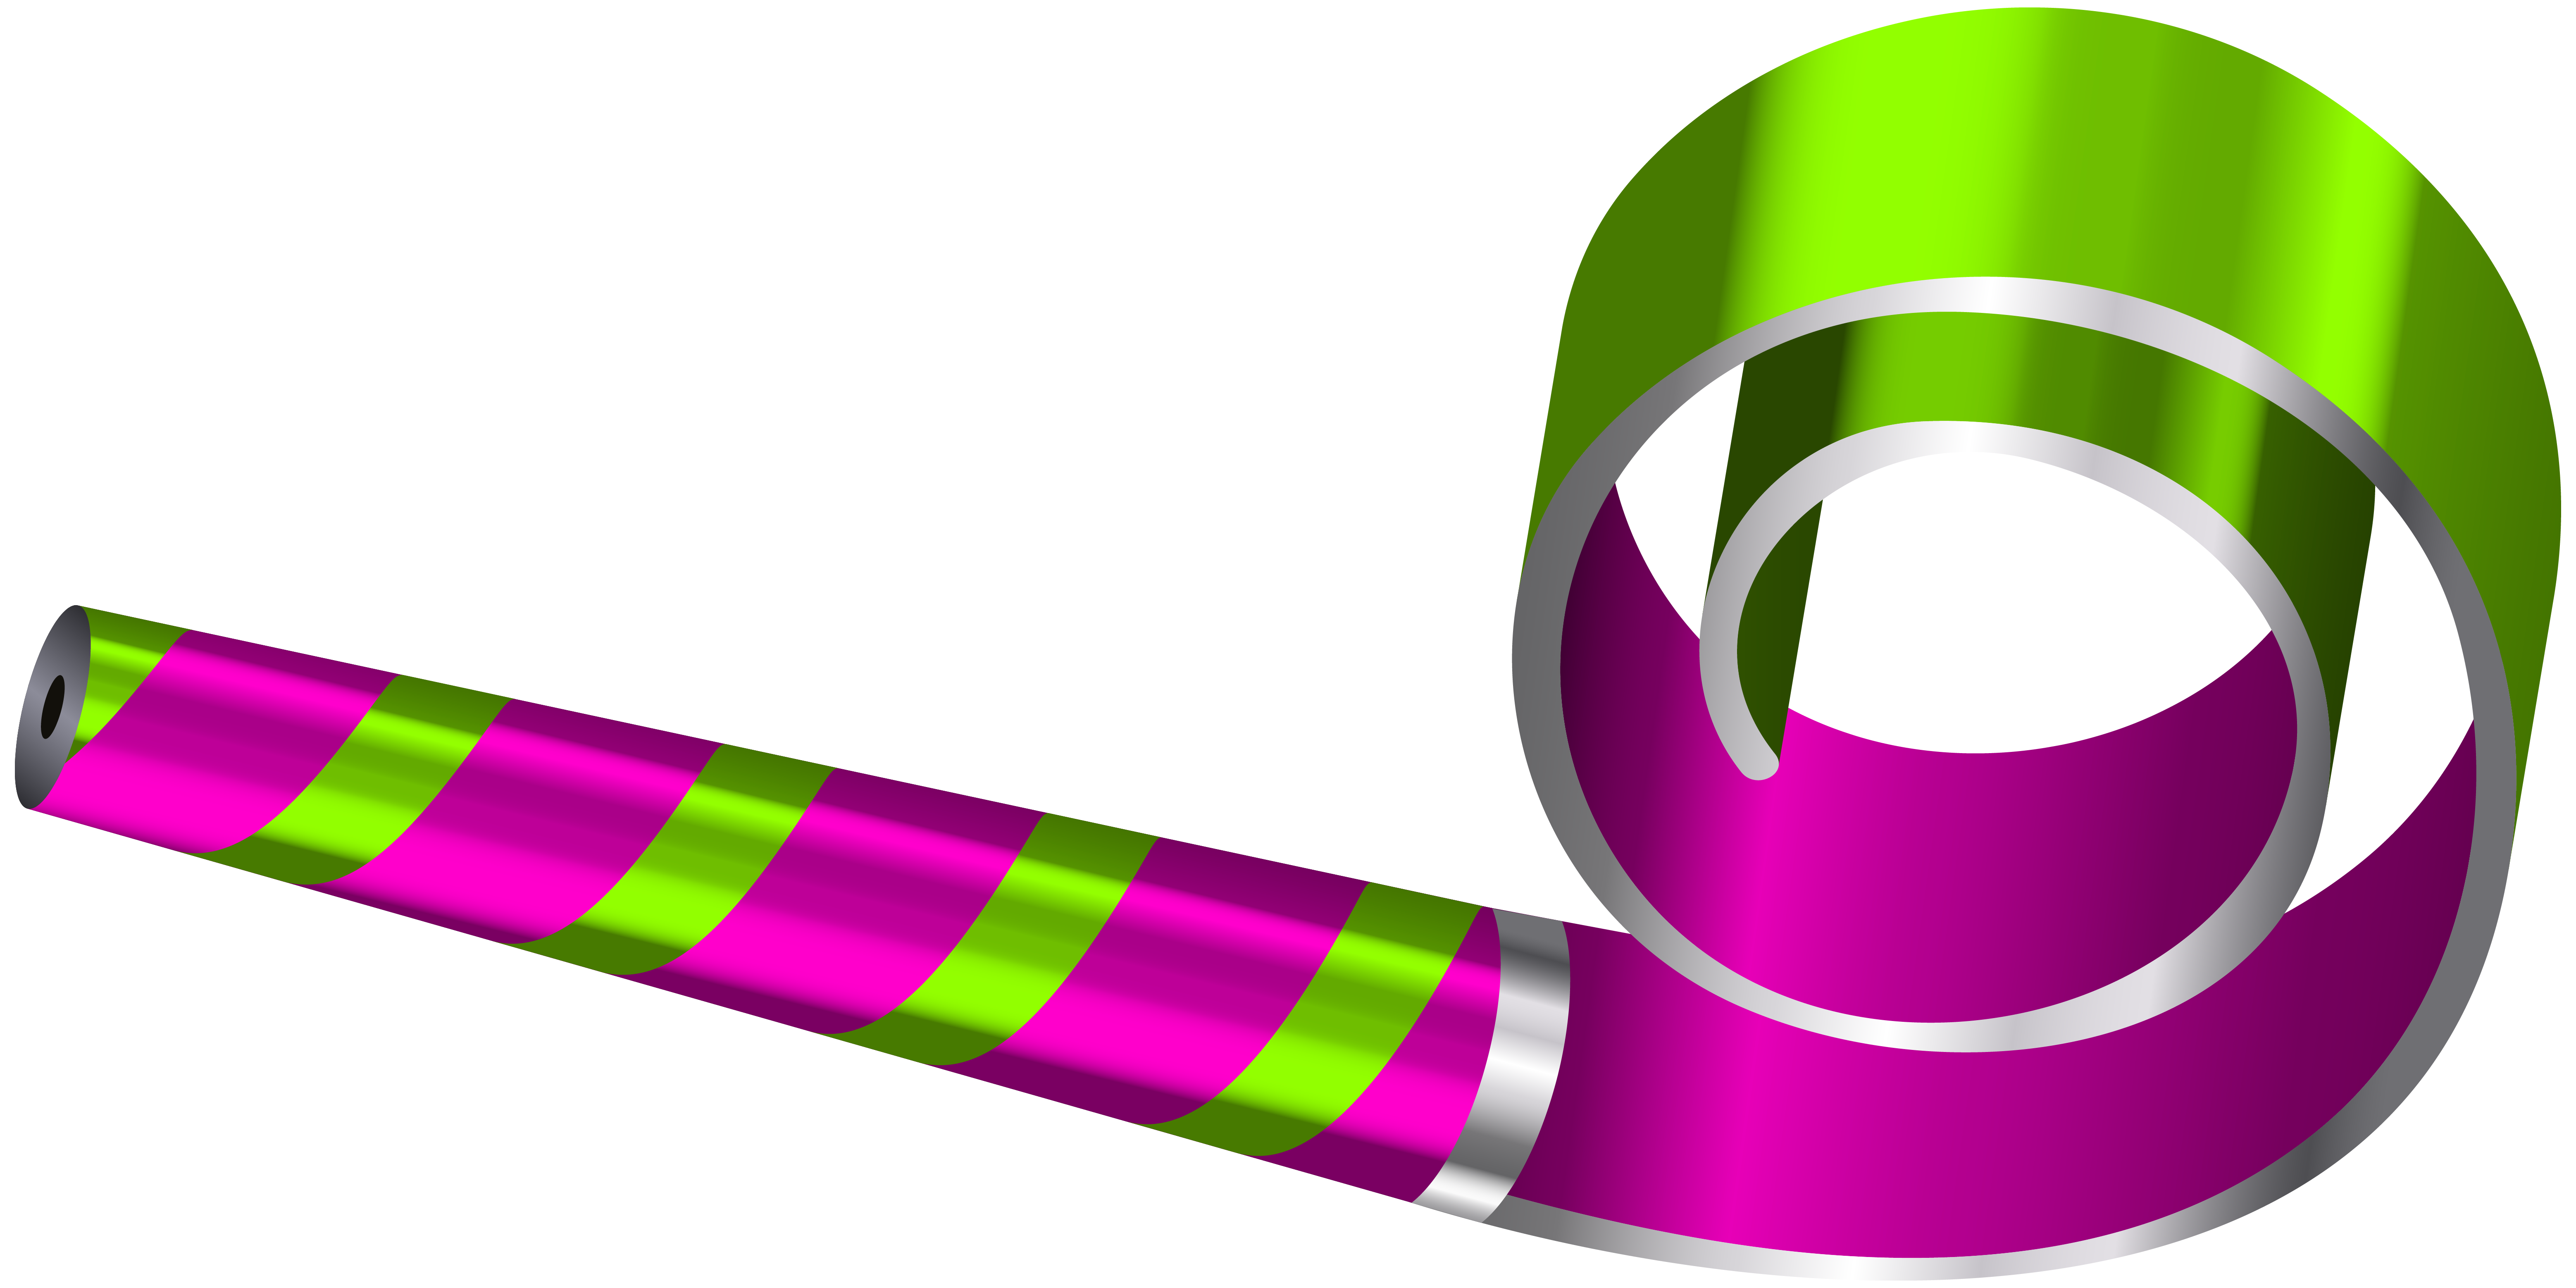 Party horn png. Birthday whistle clipart picture